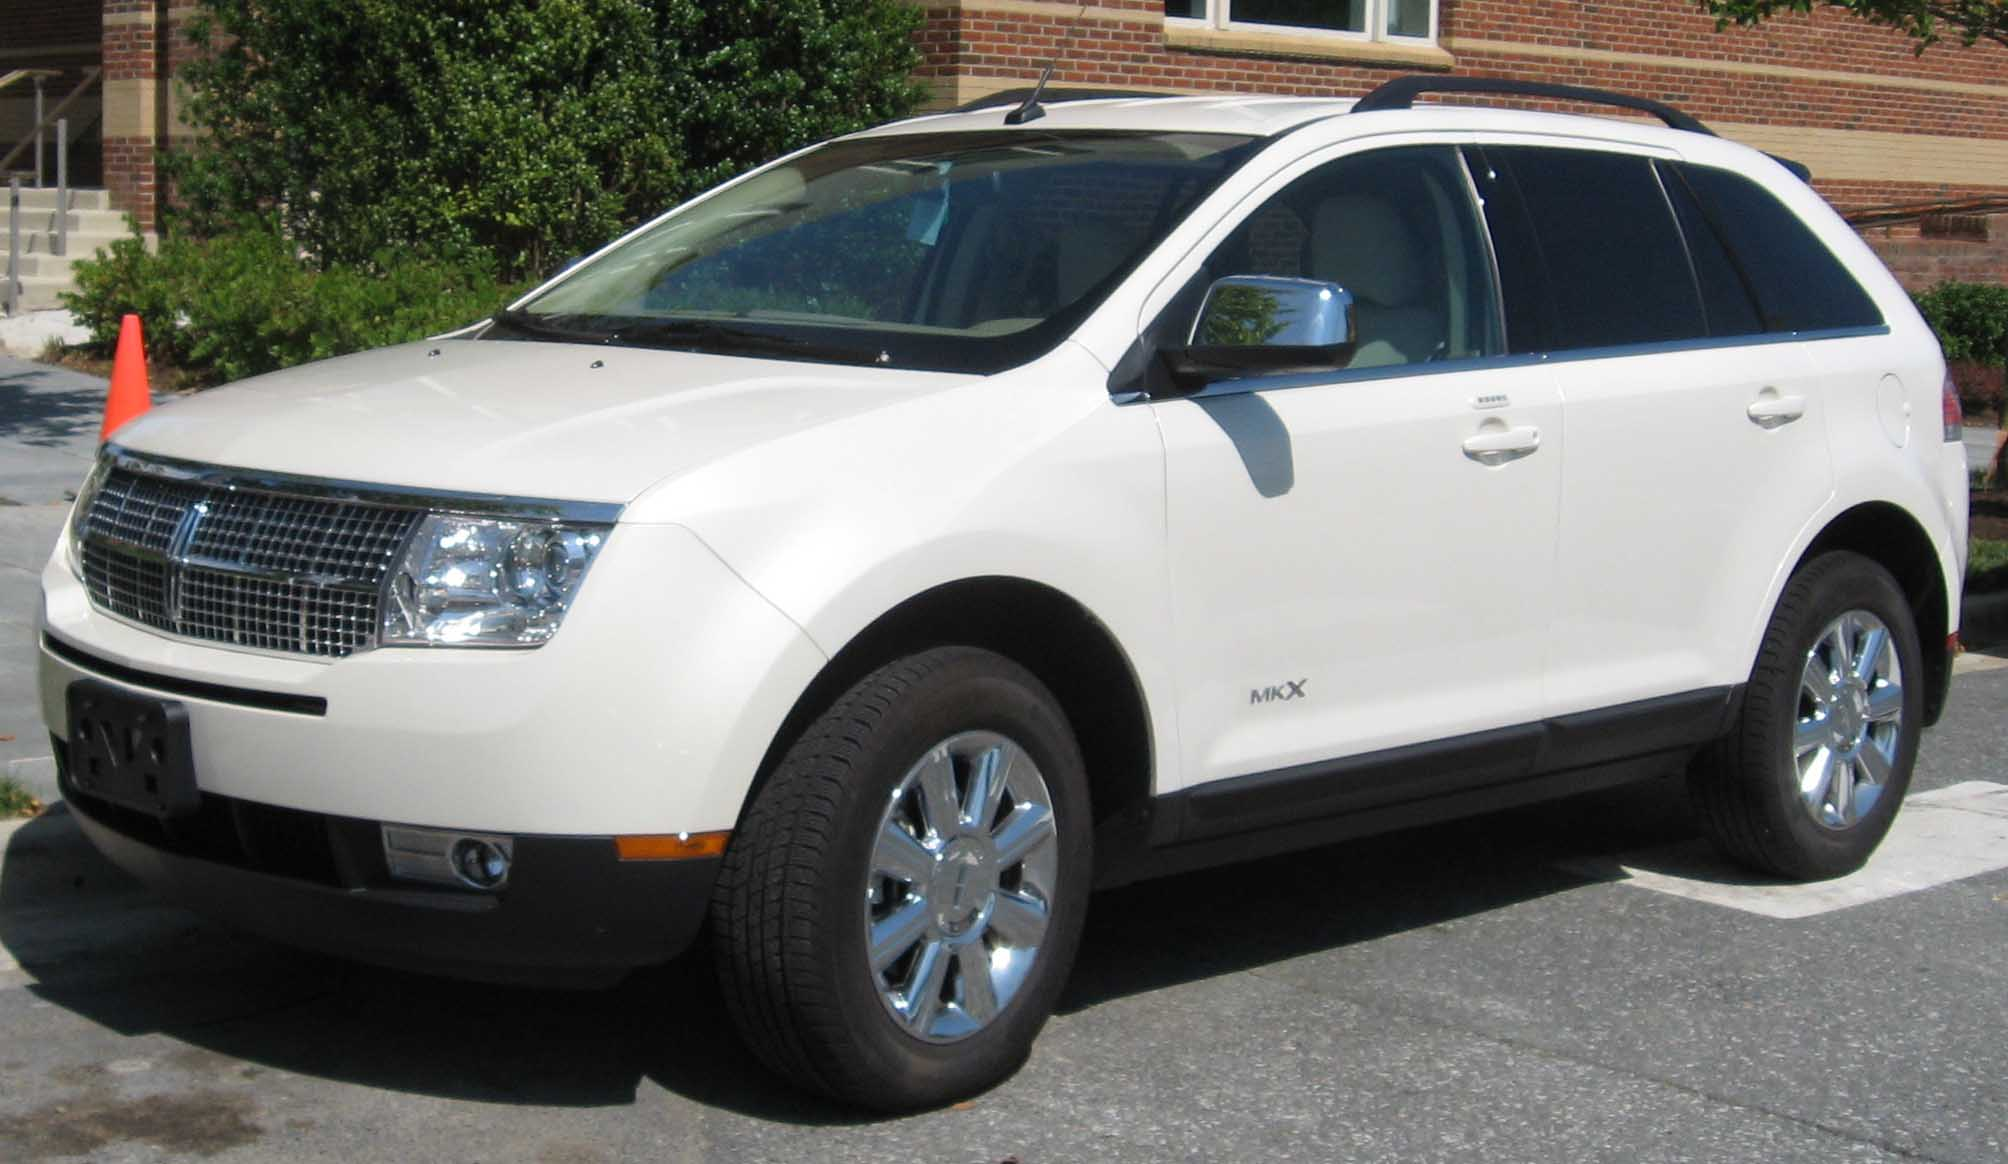 File 07 Lincoln Mkx Jpg Wikimedia Commons